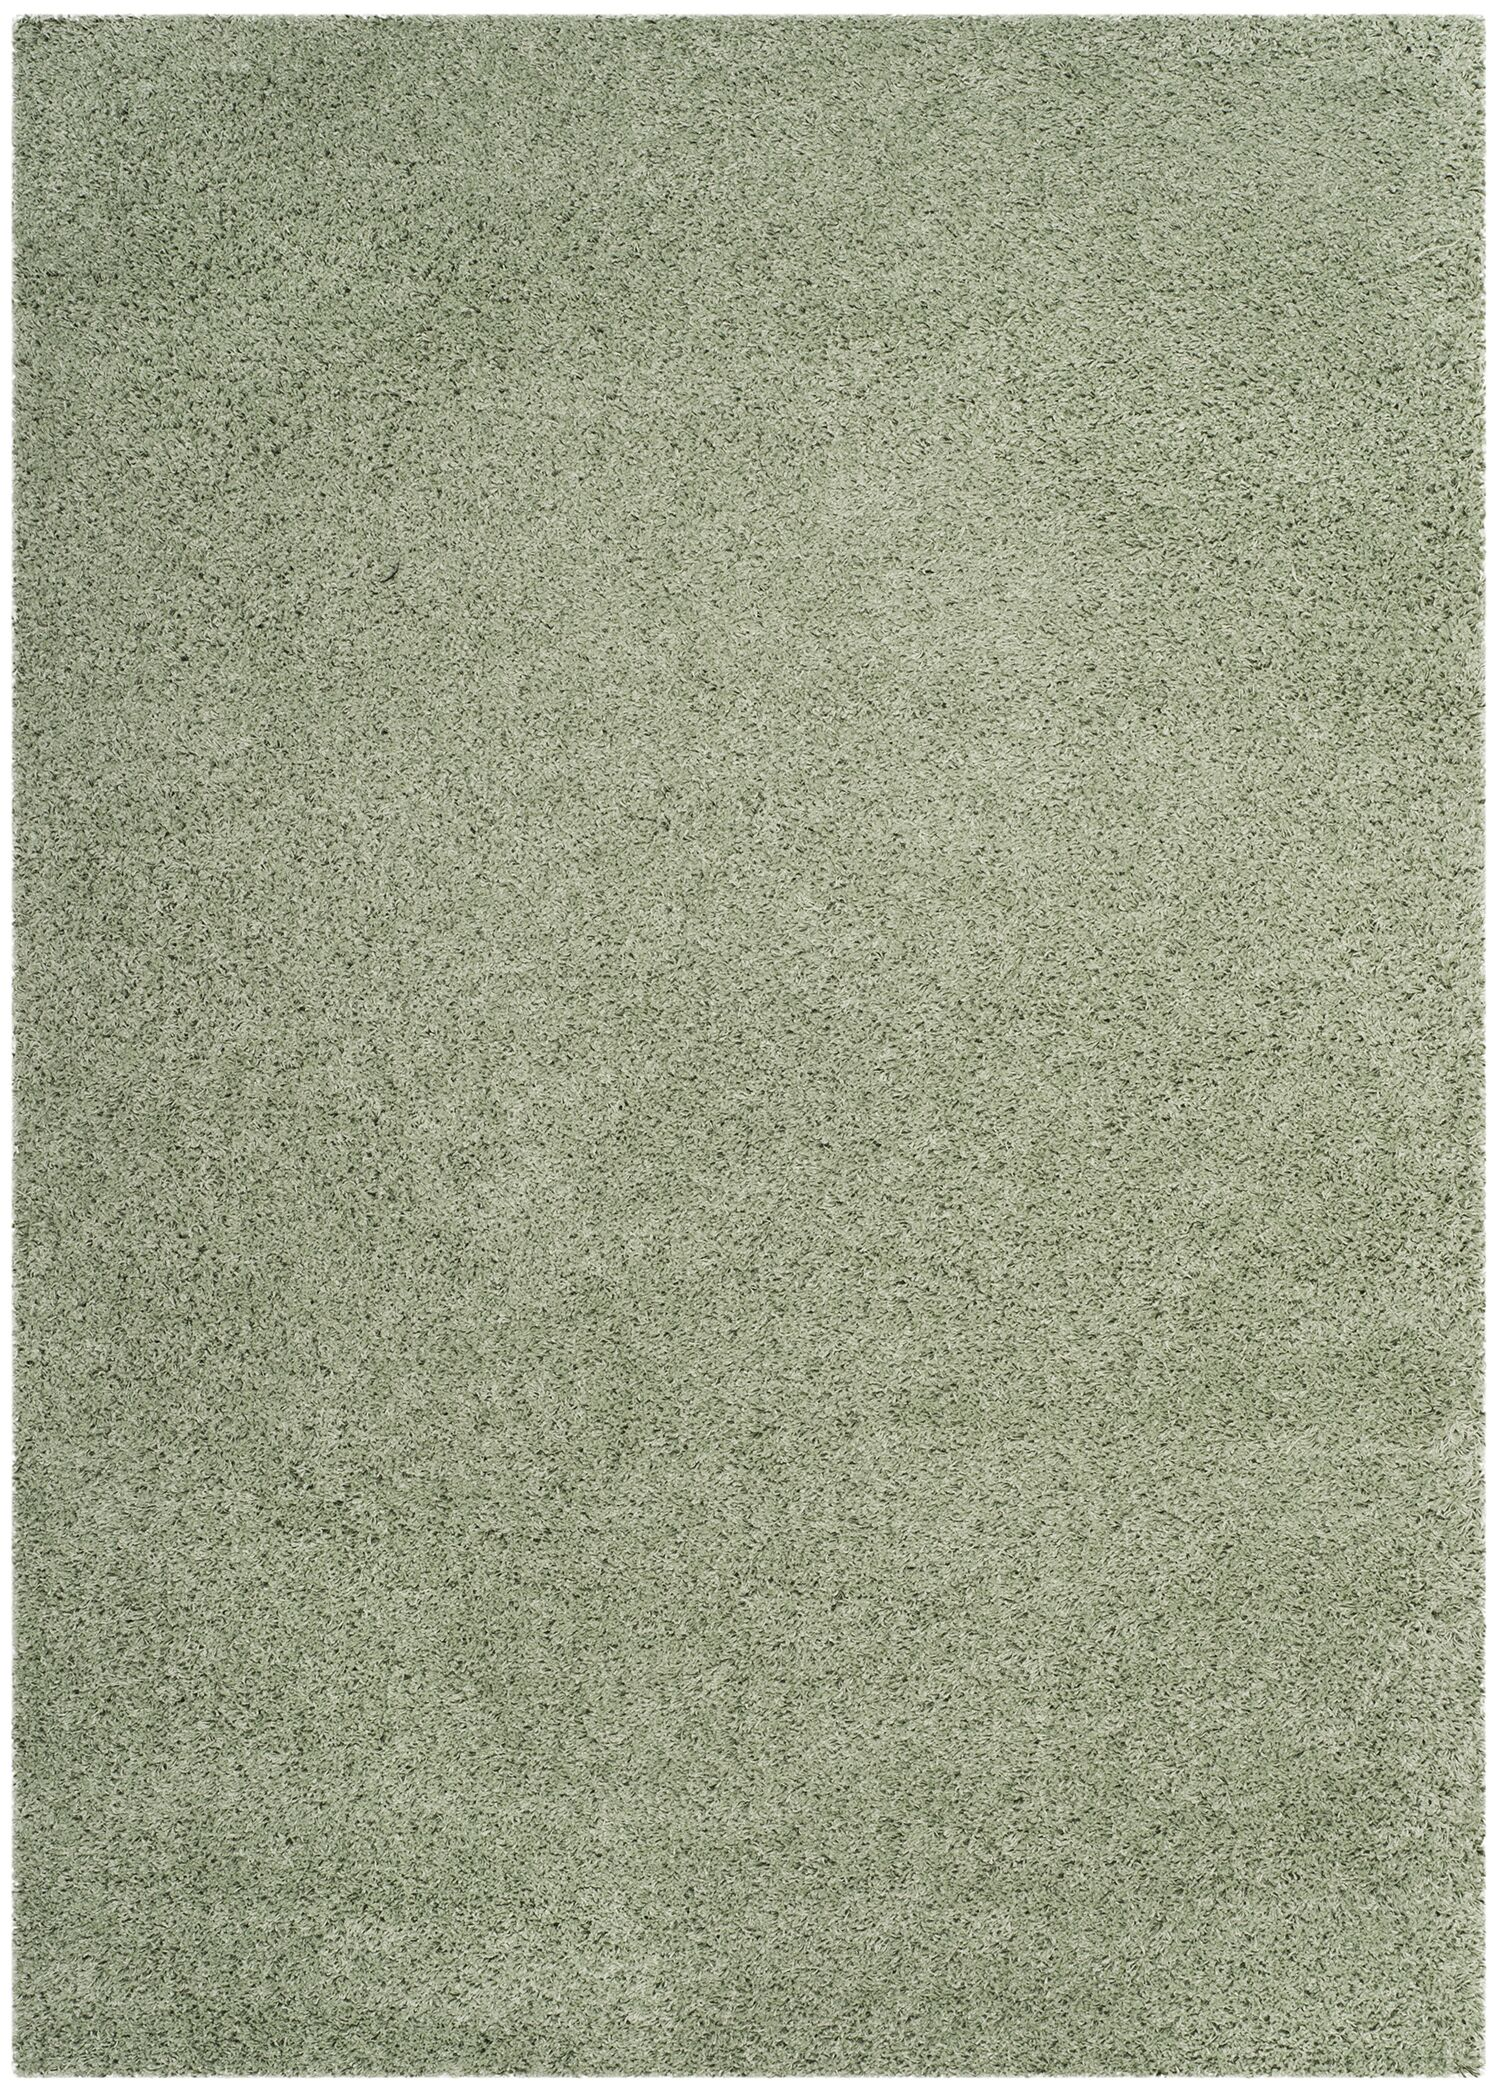 Combs Green Area Rug Rug Size: Rectangle 5'3